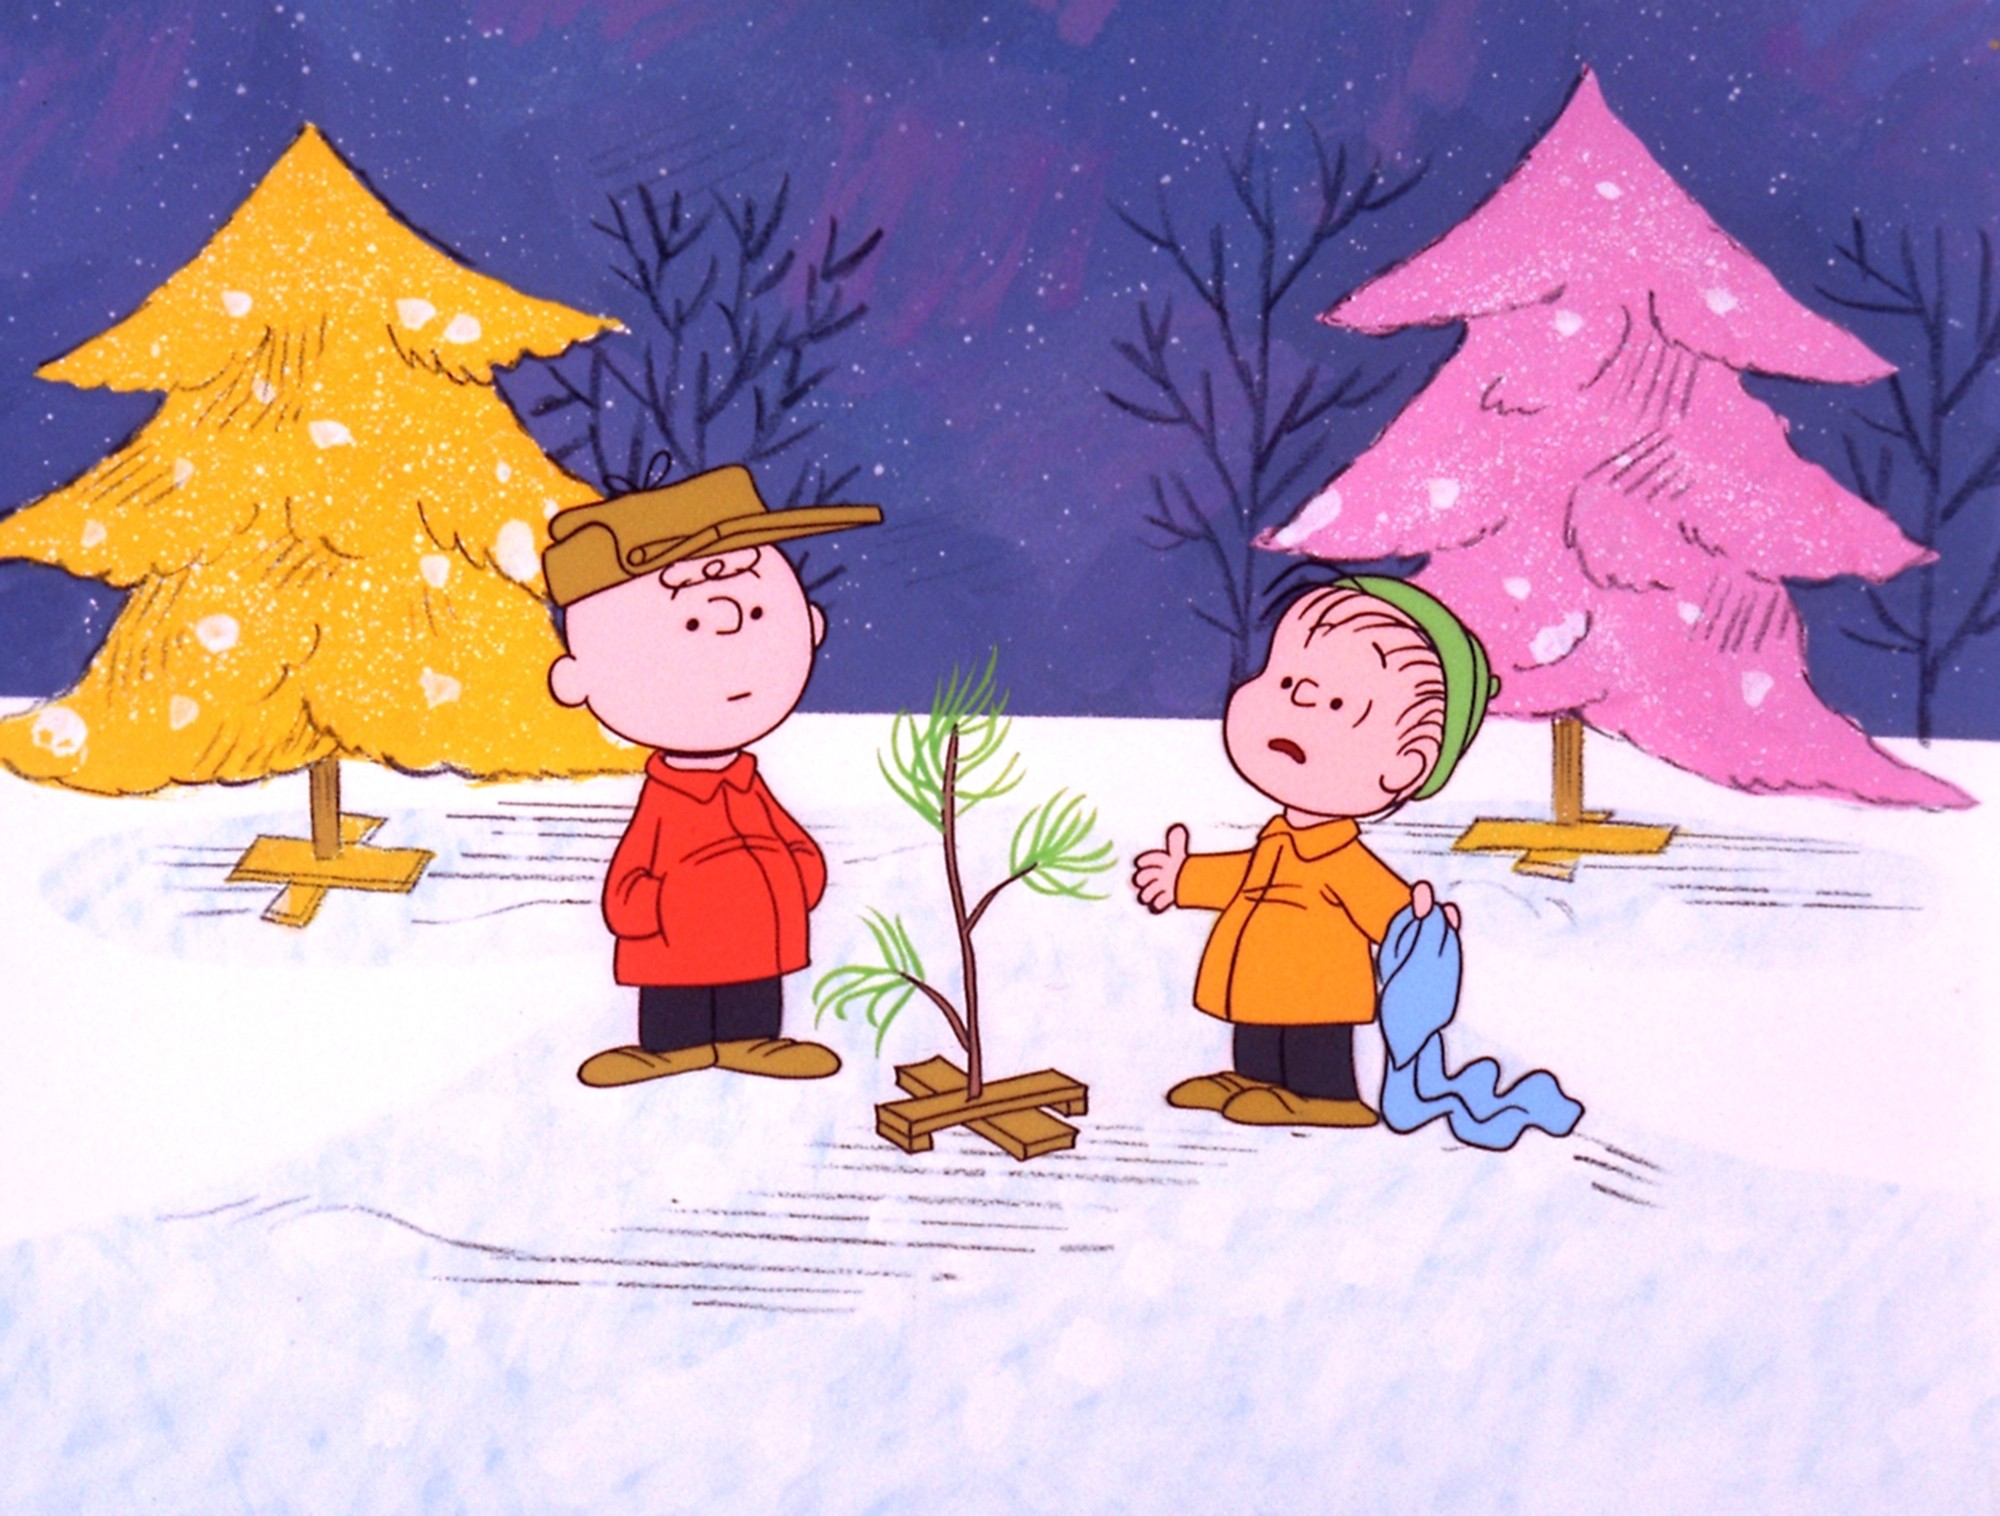 Charles brown please come home for christmas - When It Came Time To Record Those Lyrics Along With The Other Two Songs Performed By The Kids During The Course Of The Special Guaraldi Knew Precisely Who